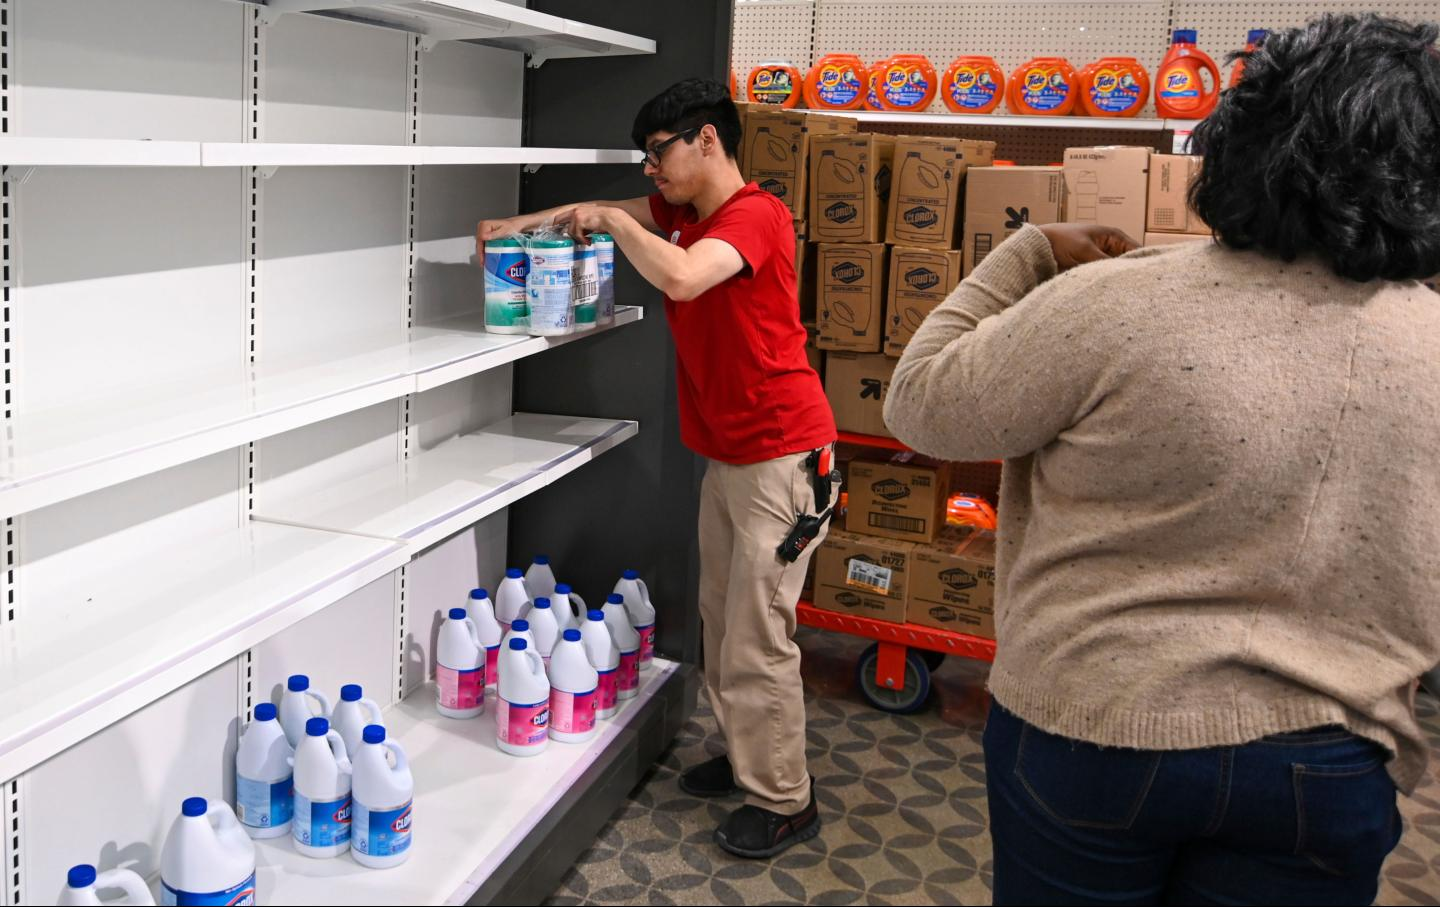 A target worker stocks goods at a store in Riverside, California